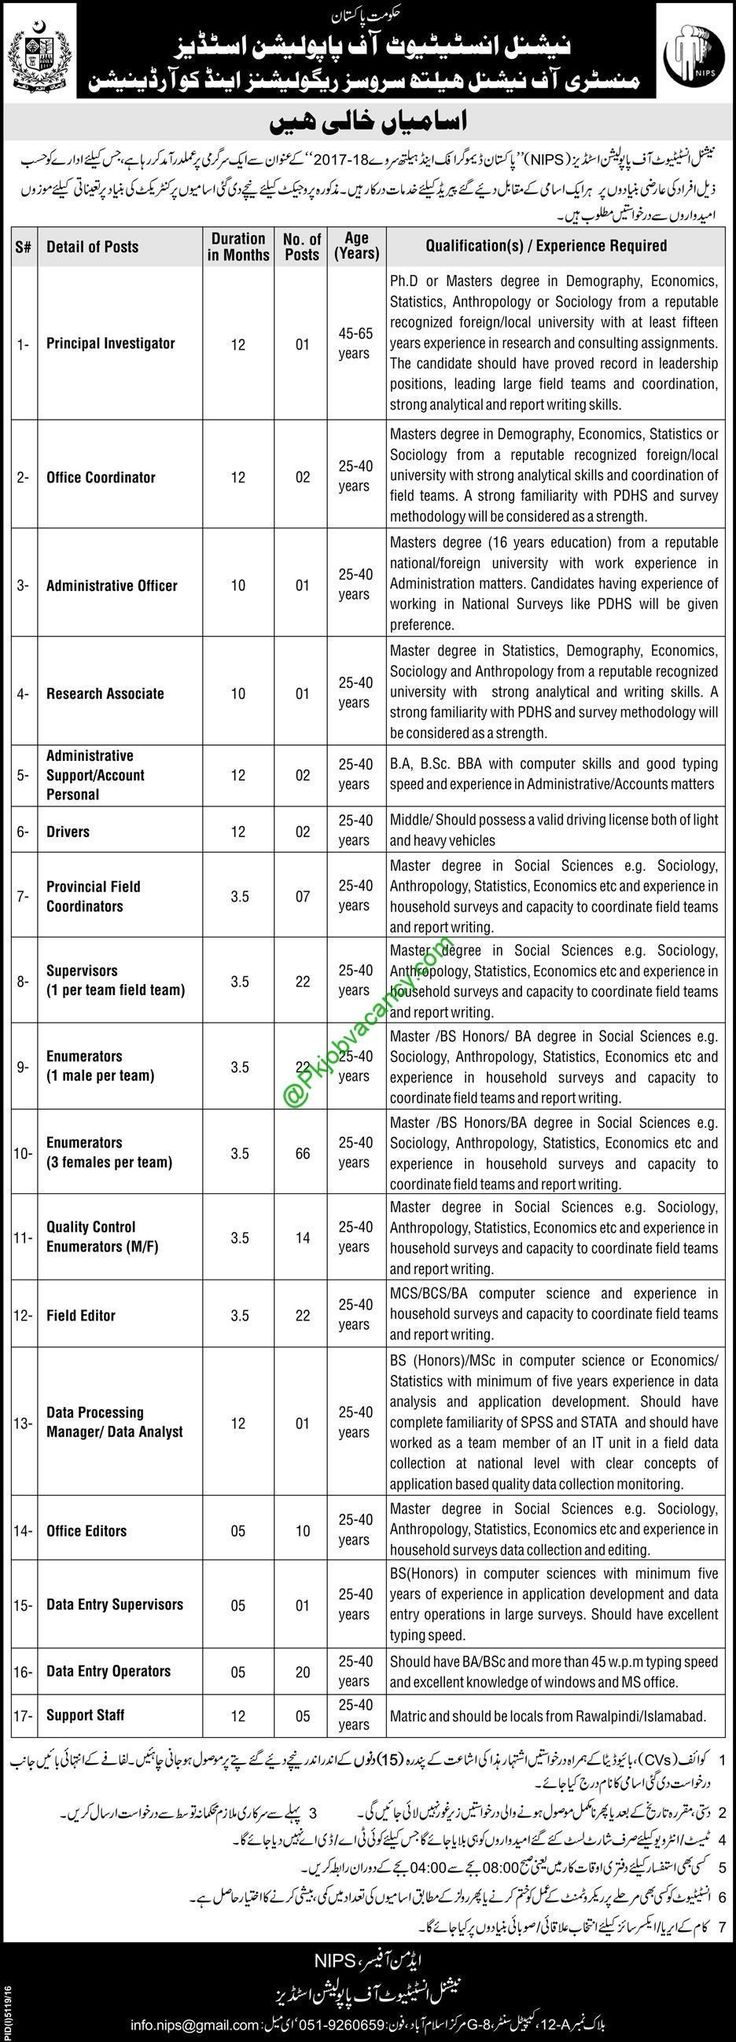 Ministry of National Health Services, Regulations & Coordination National Institute of Population Studies NIPS Islamabad Jobs 2017